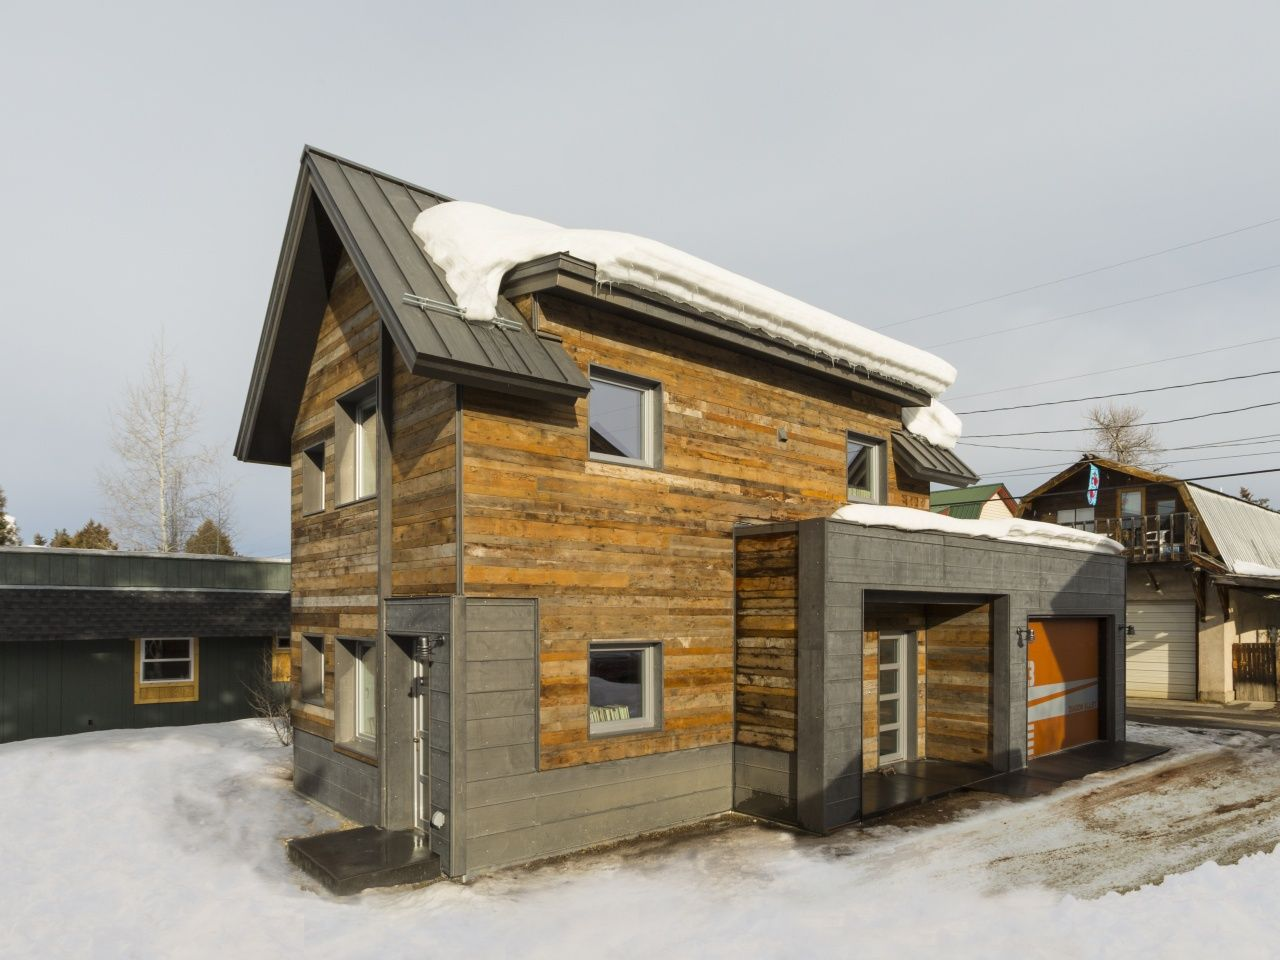 This small 2 bedroom house in Steamboat